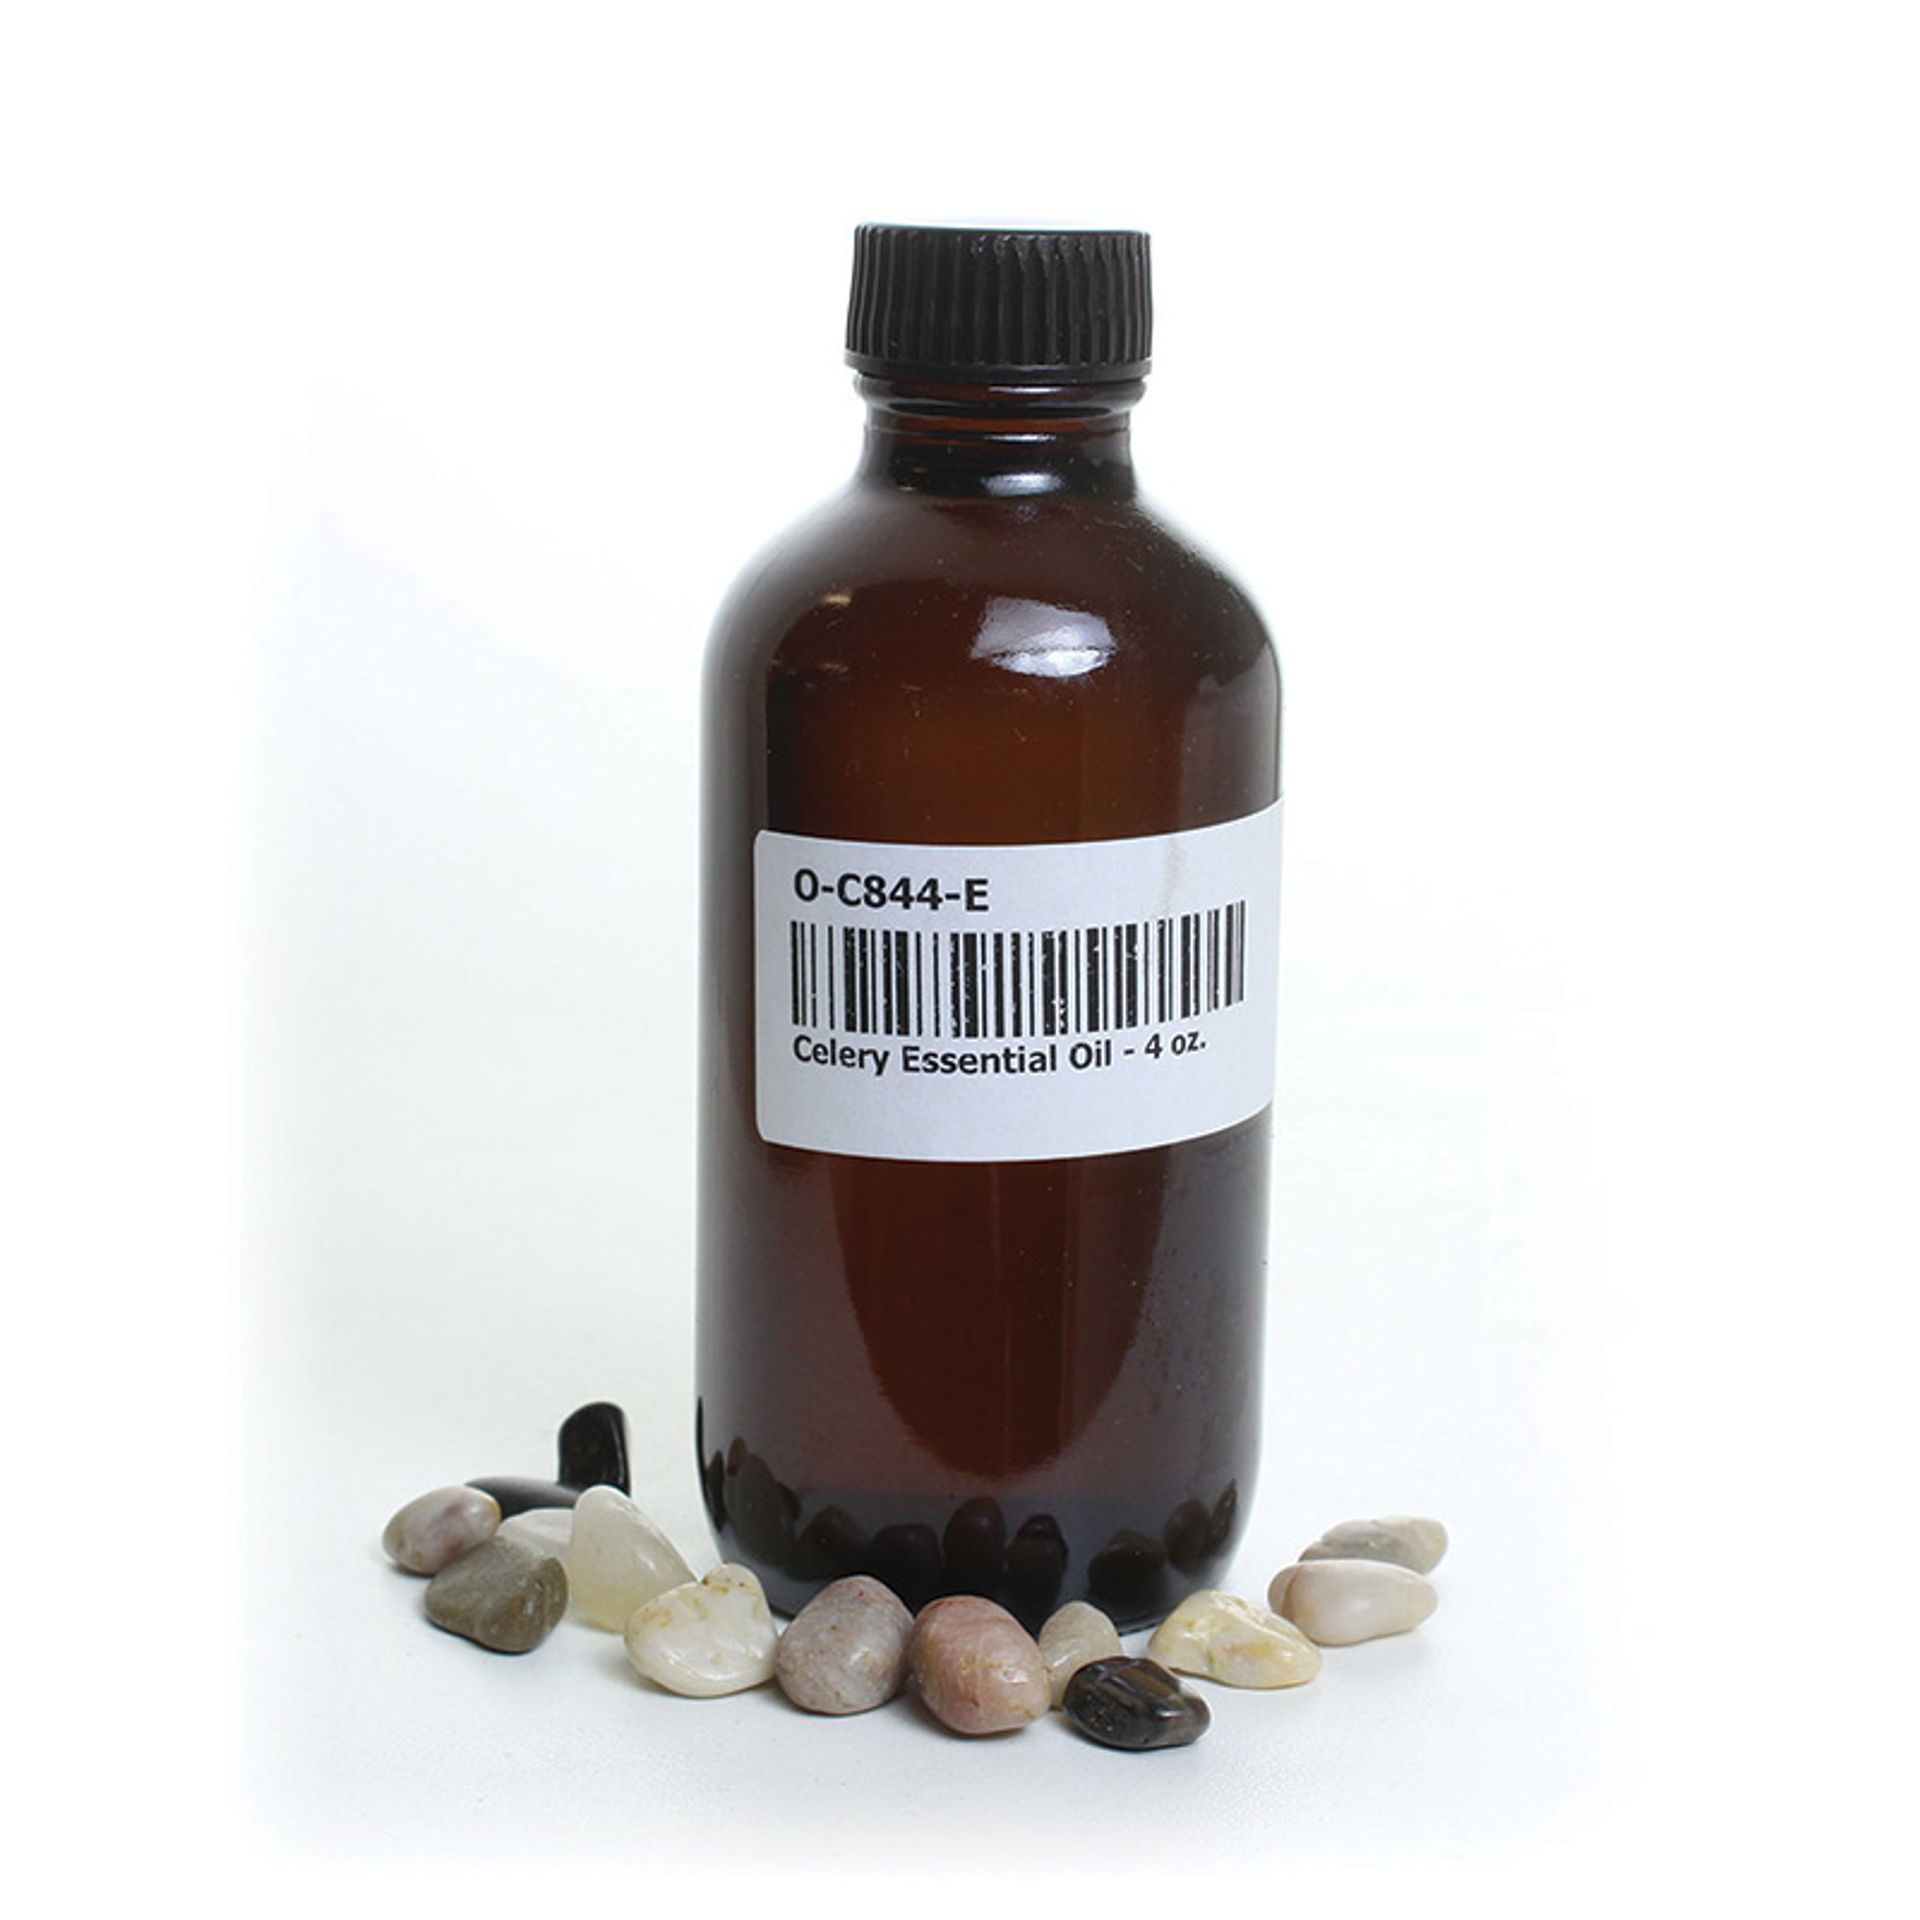 Picture of Celery Essential Oil - 4 oz.